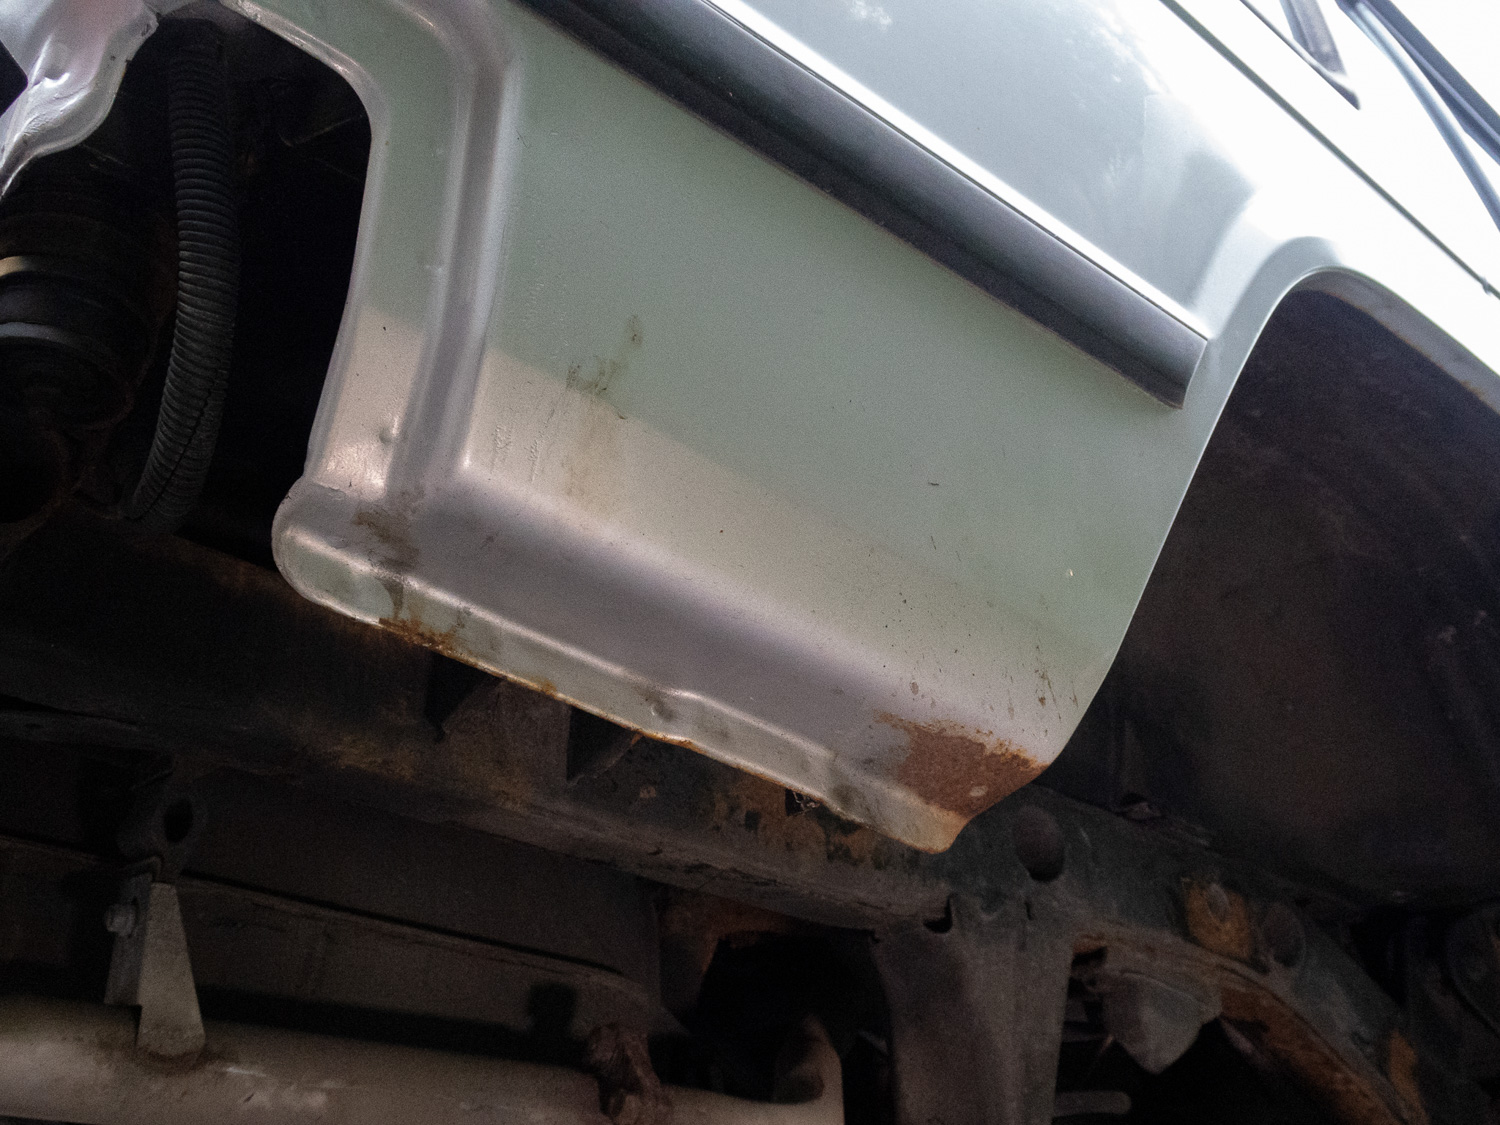 Underbody before paint close